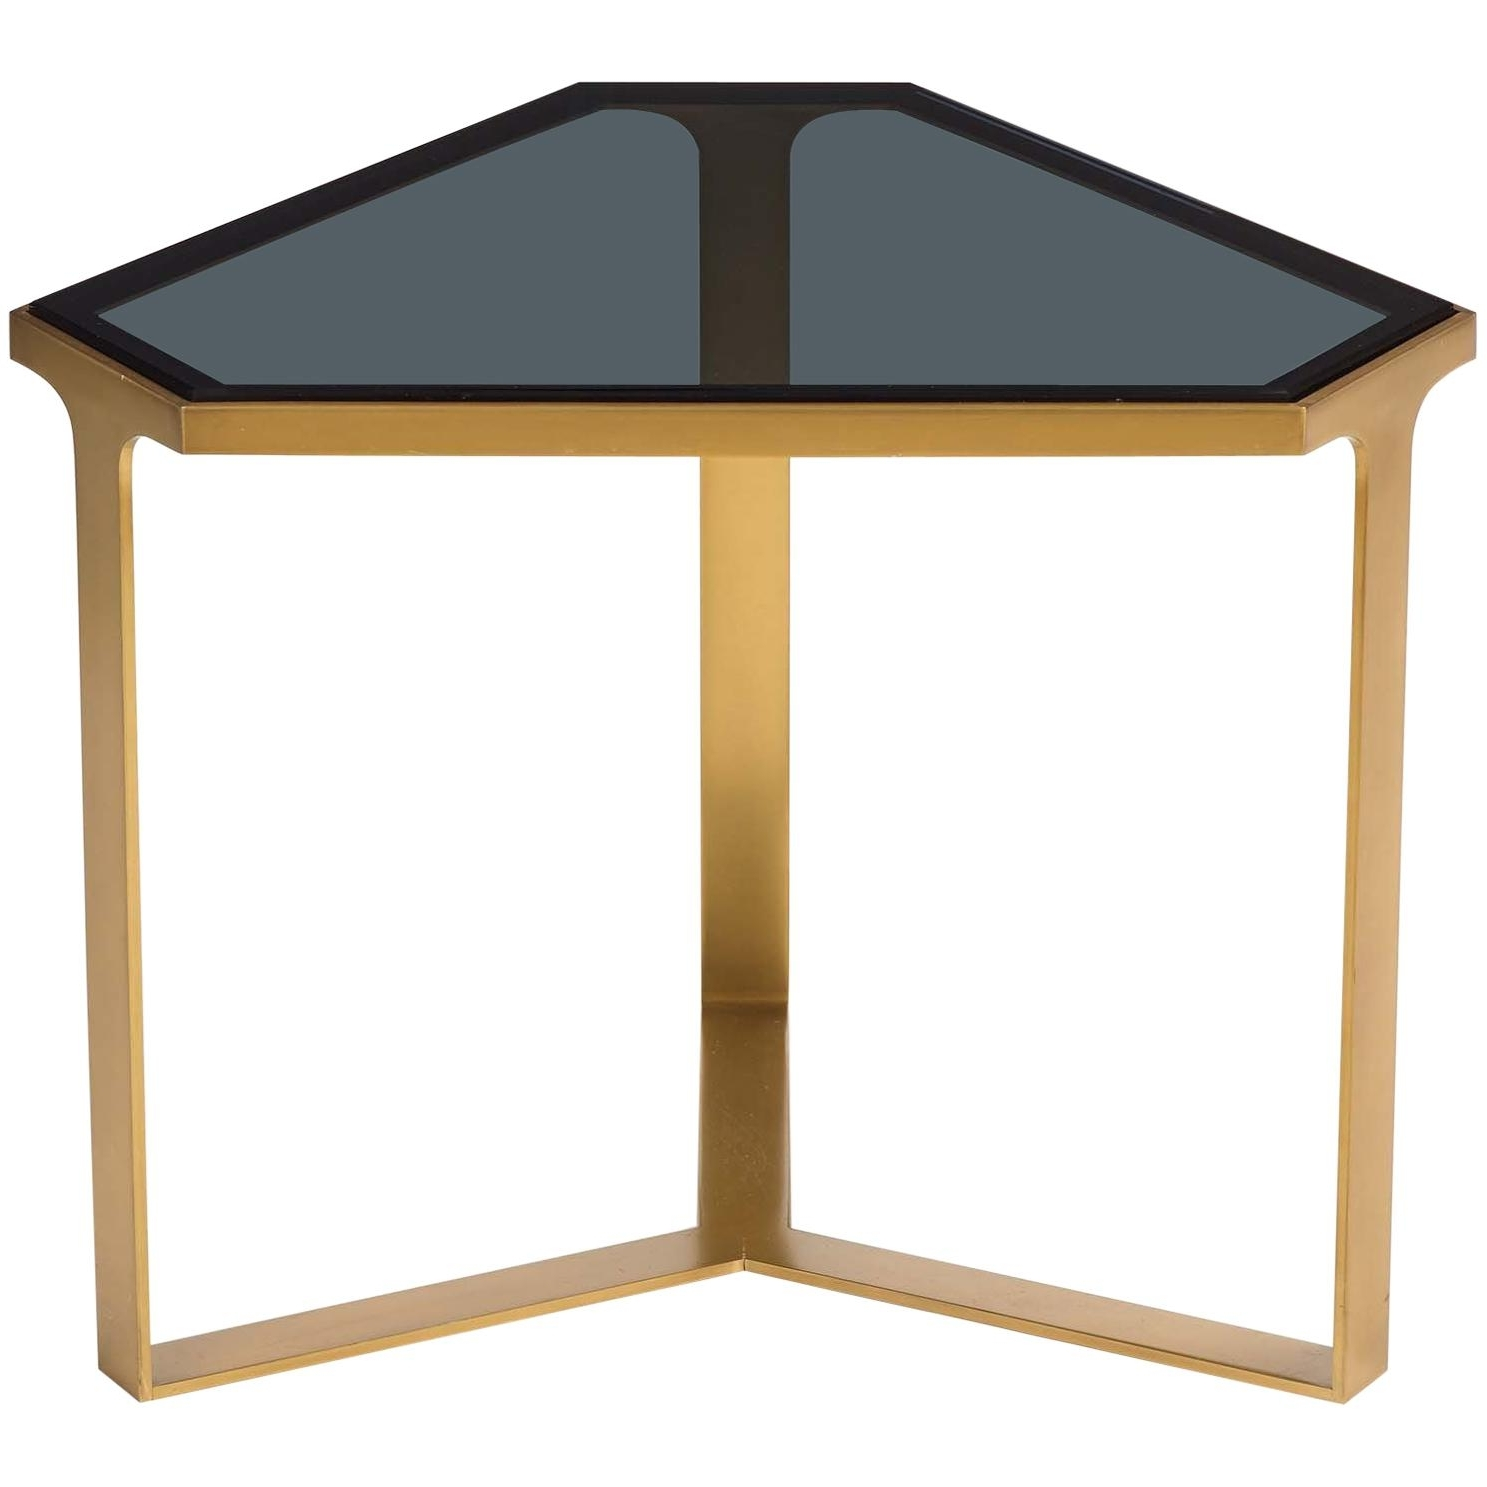 Donghia Forma Table With Satin Brass Base And Gray Glass Top For Pertaining To Most Recent Forma Cocktail Tables (View 8 of 20)